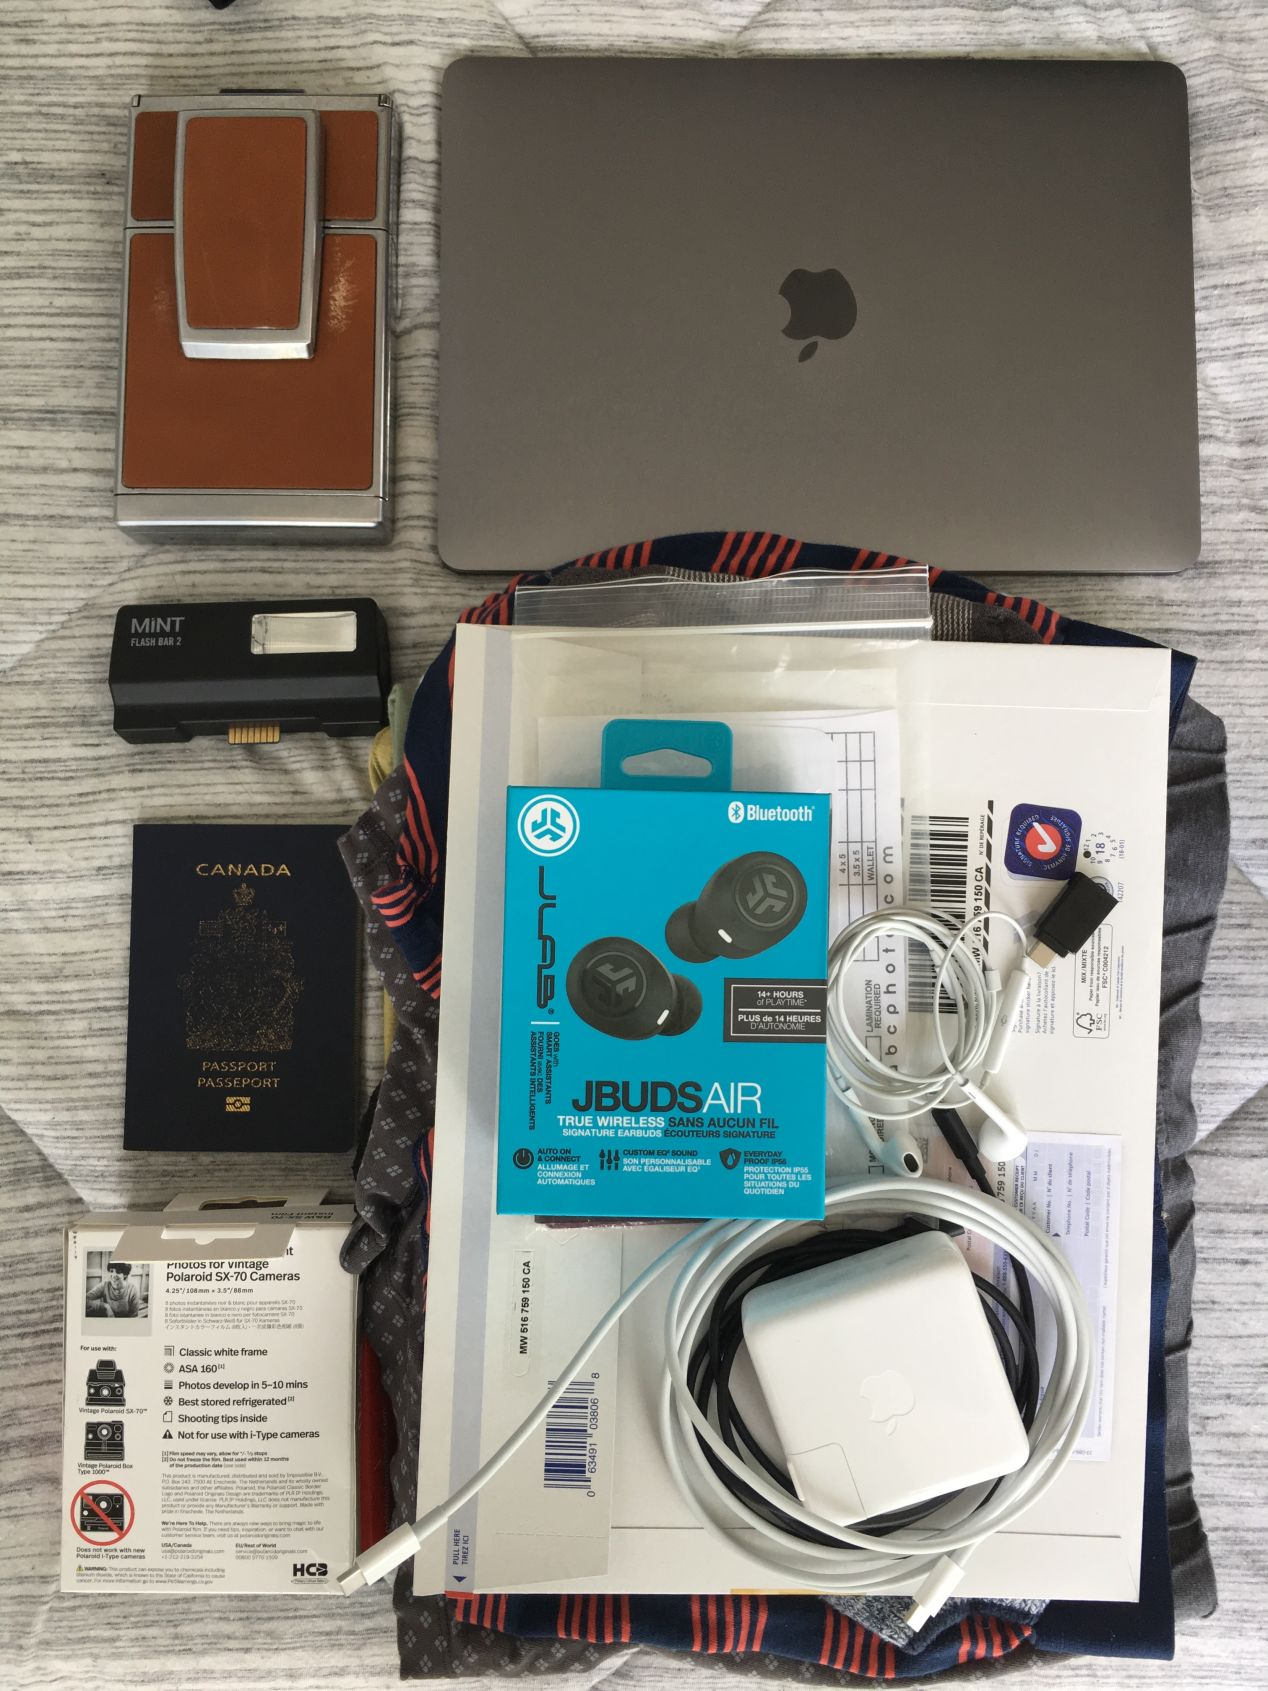 For my week-long trip across Canada to visit my parents, I took my SX-70 with two packs of film, a flash bar, laptop, documents, underwear, shirts, socks, and headphones for my brother, which I brought as a gift. I bought more film once I arrived in Toronto.